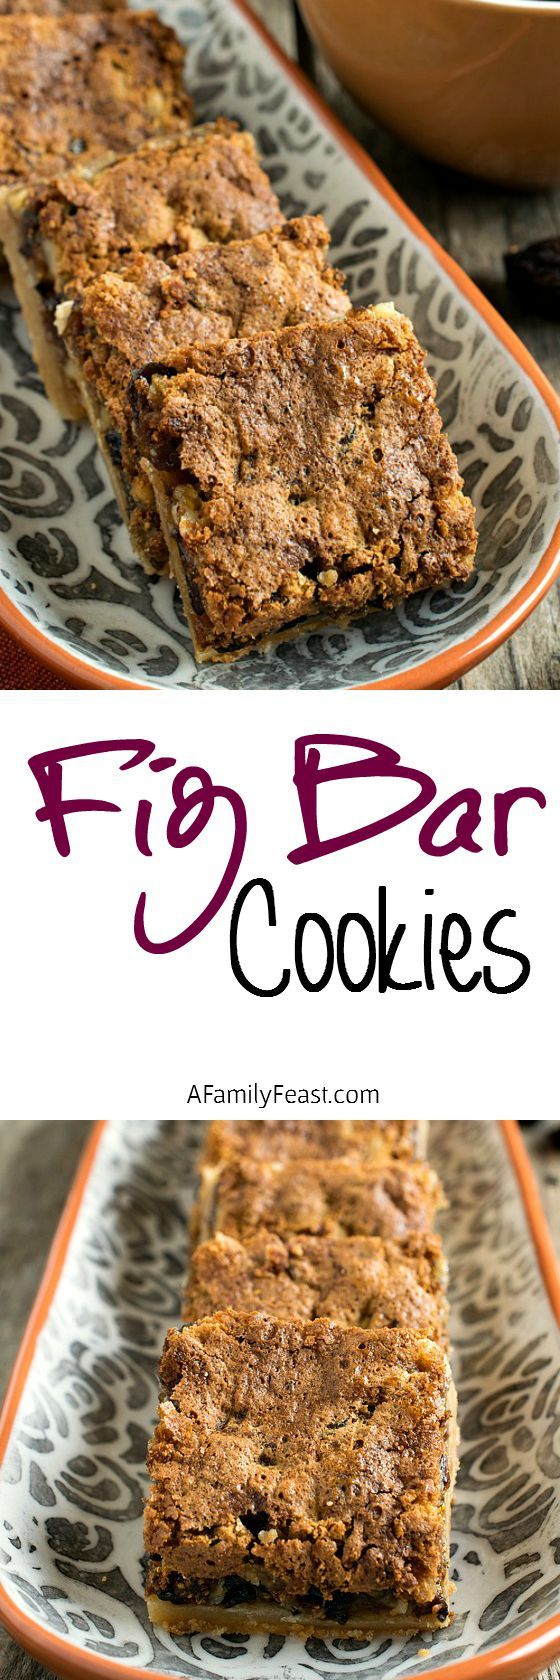 Fig Bar Cookies - Rich, sweet and slightly crunch bars filled with a decadent fig filling. Delicious!